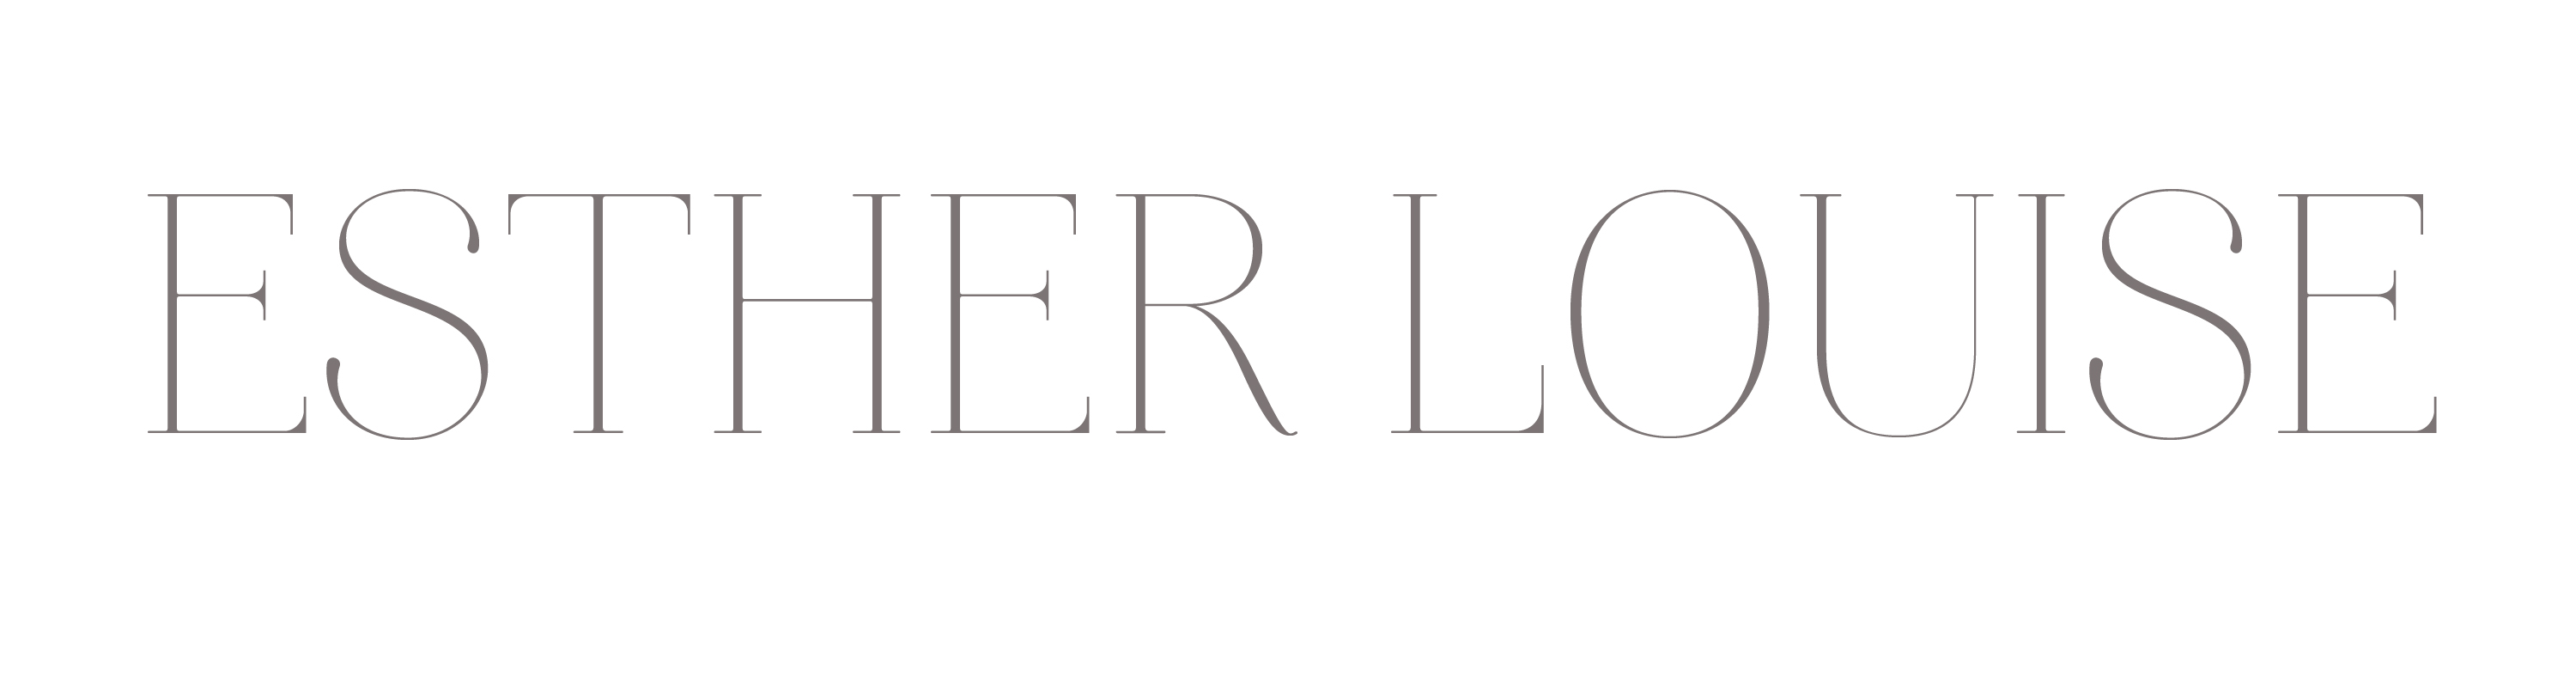 Esther Louise Seniors logo